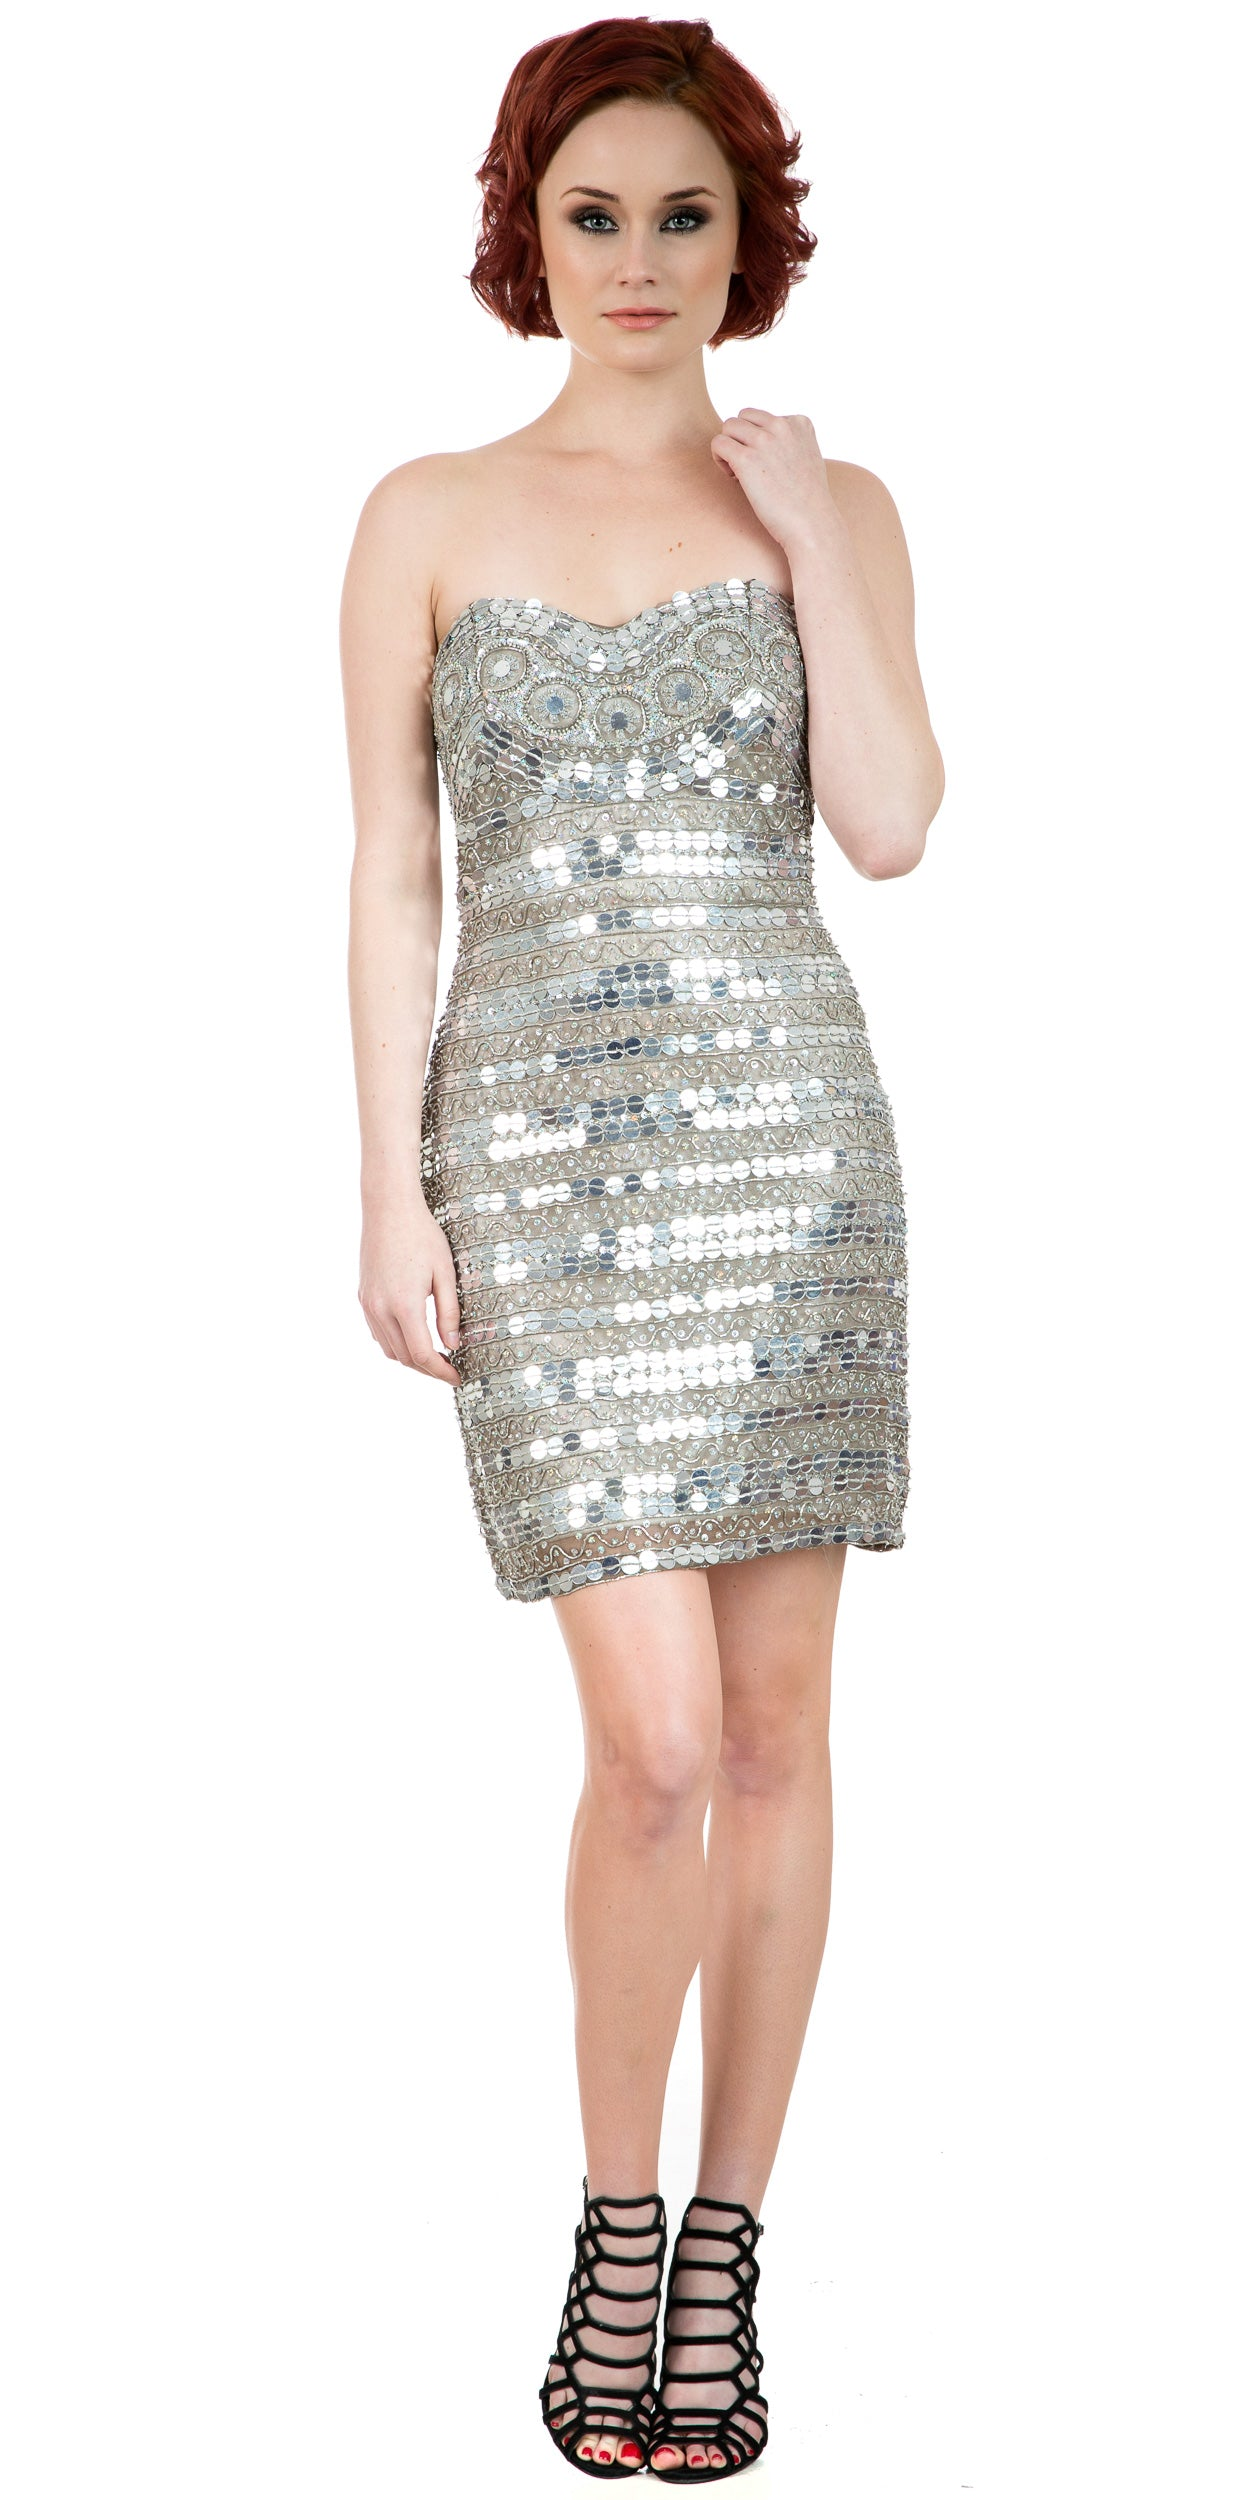 Main image of Strapless Mirror Sequins & Beads Short Prom Party Dress